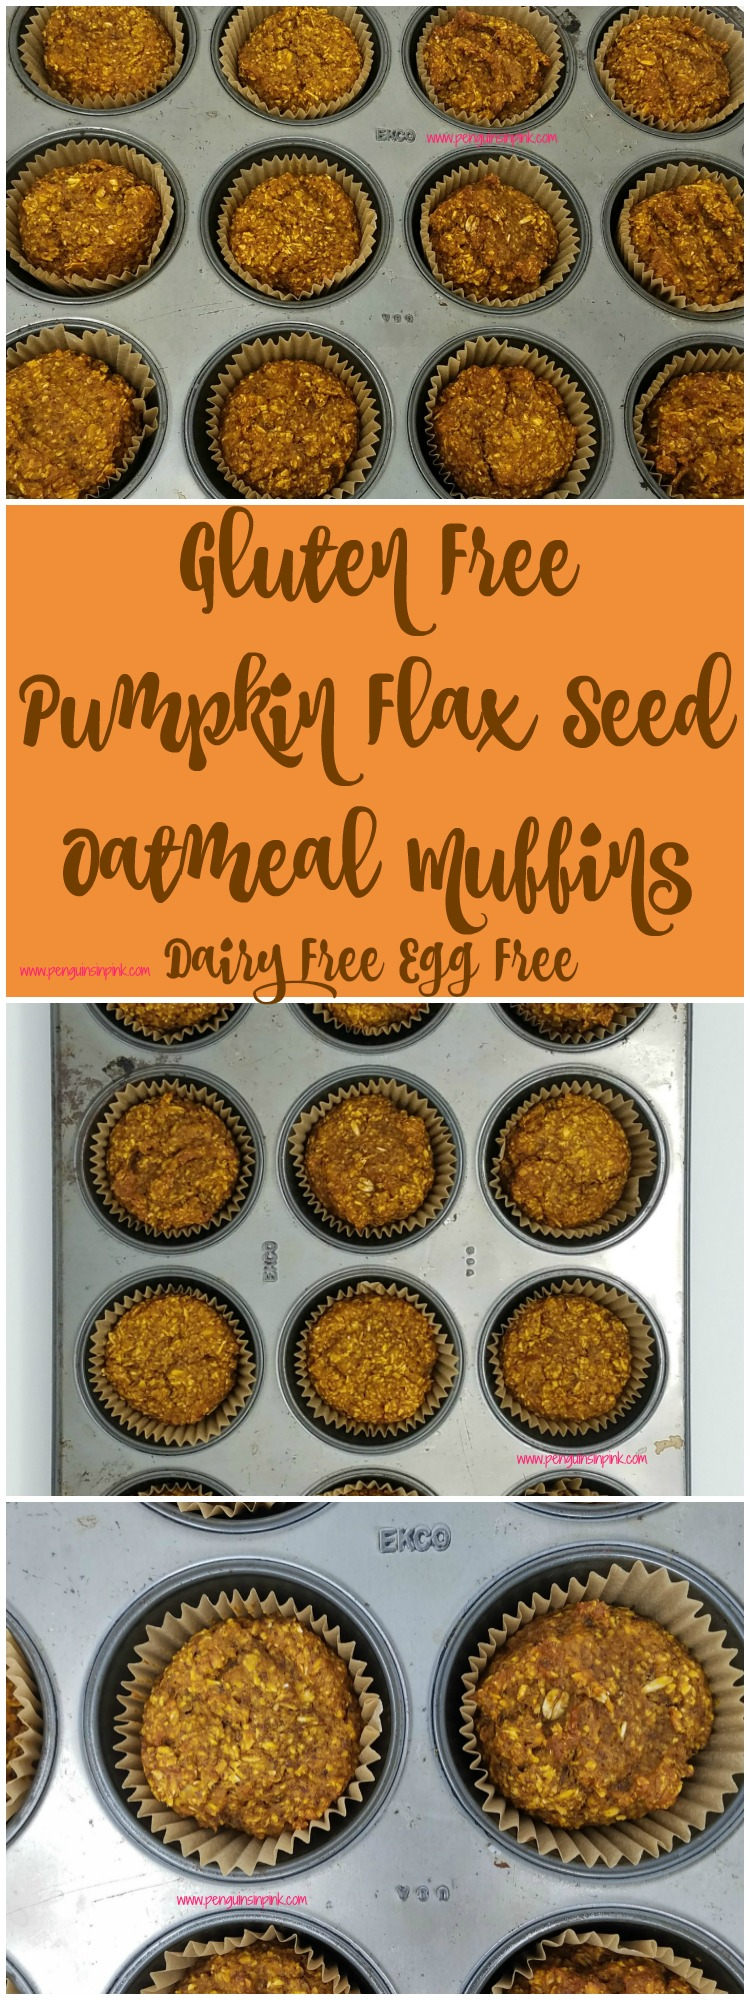 These Gluten Free Pumpkin Flax Seed Oatmeal Muffins are super healthy, egg free, dairy free, and vegan friendly and oh so yummy! They are perfect for cool fall mornings or really anytime of year!